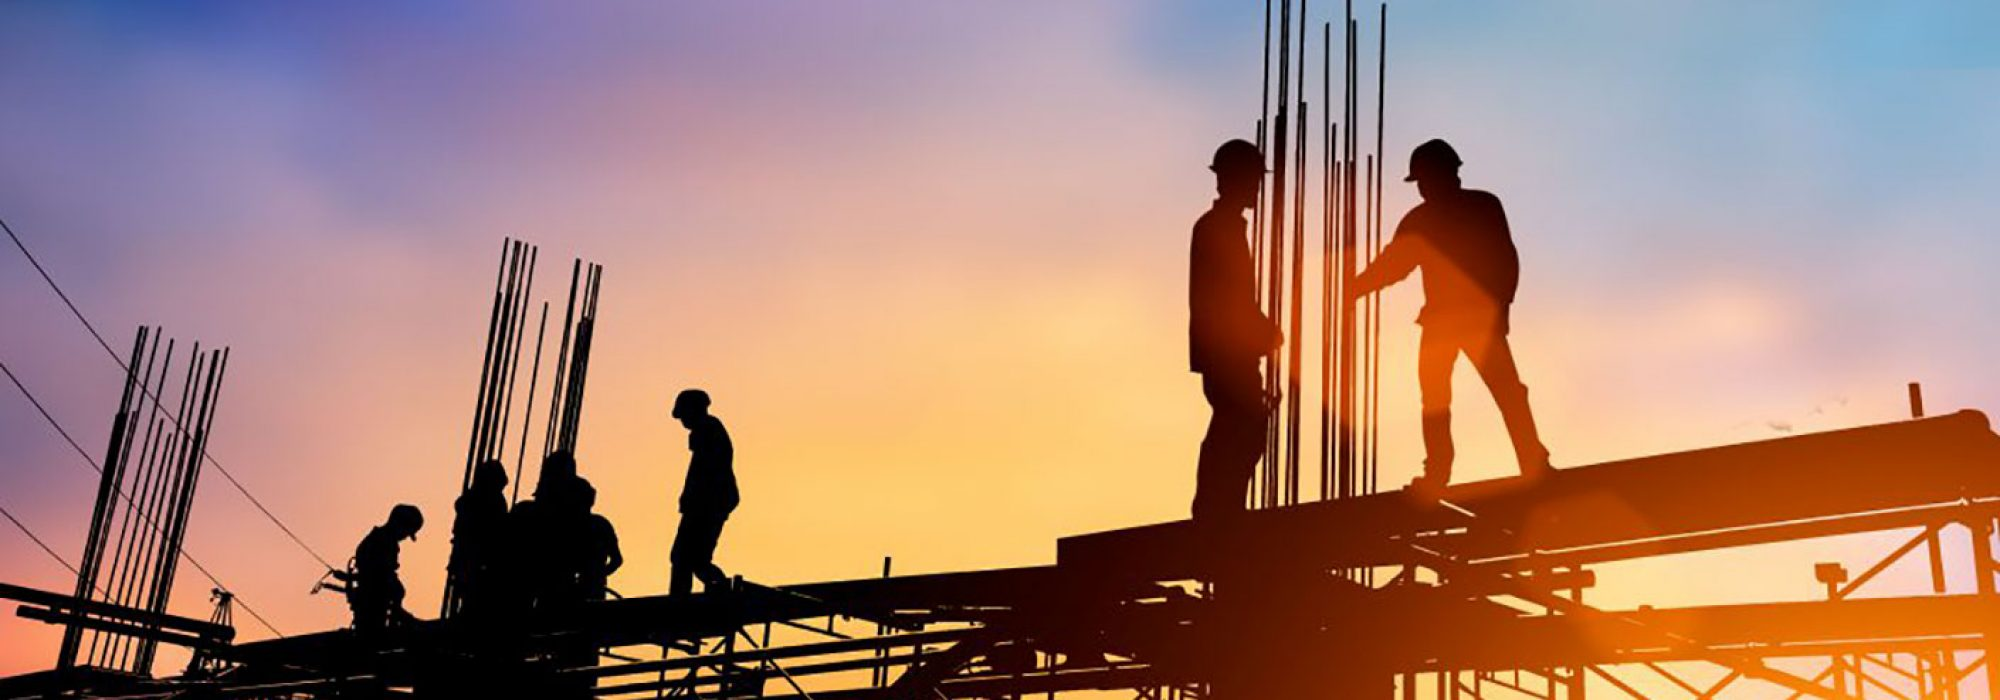 Construction-Workers-Sunset-Training-Banner-2